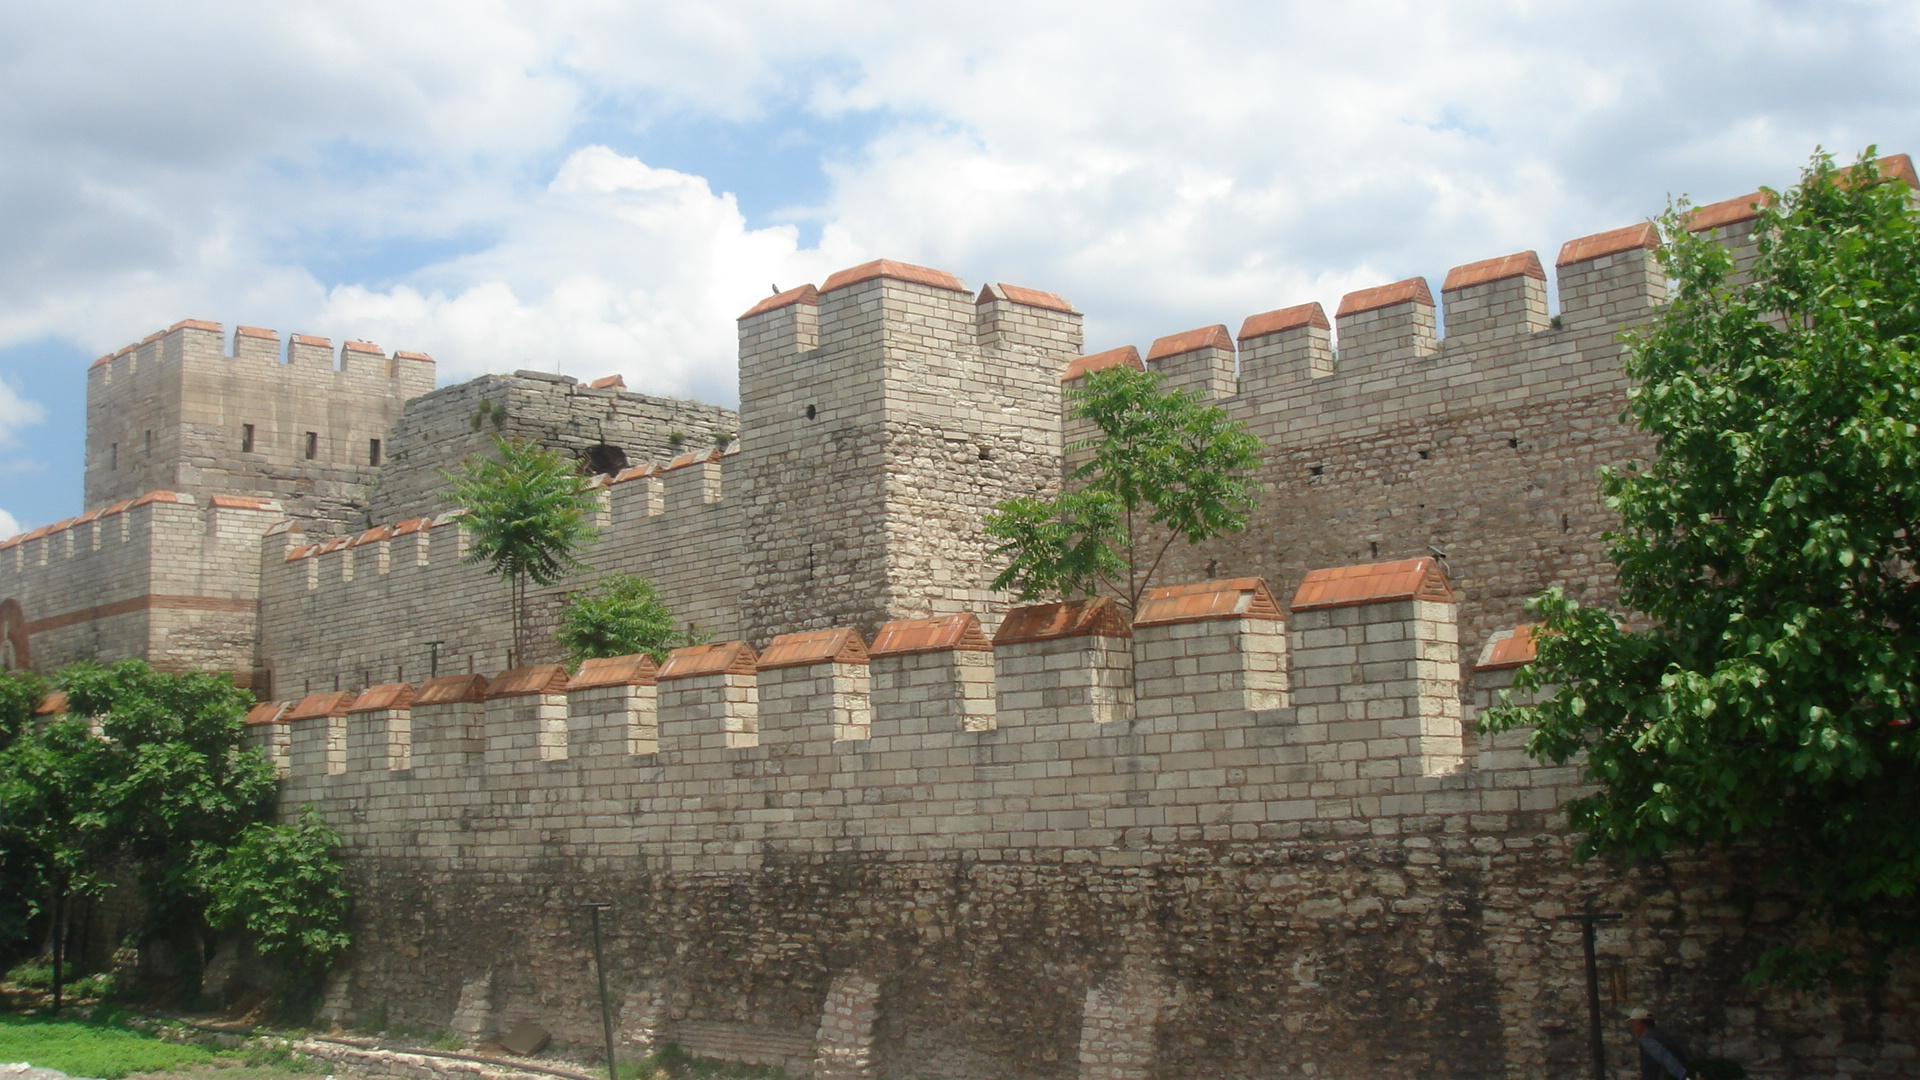 https://upload.wikimedia.org/wikipedia/commons/1/1c/Walls_of_Constantinople.JPG